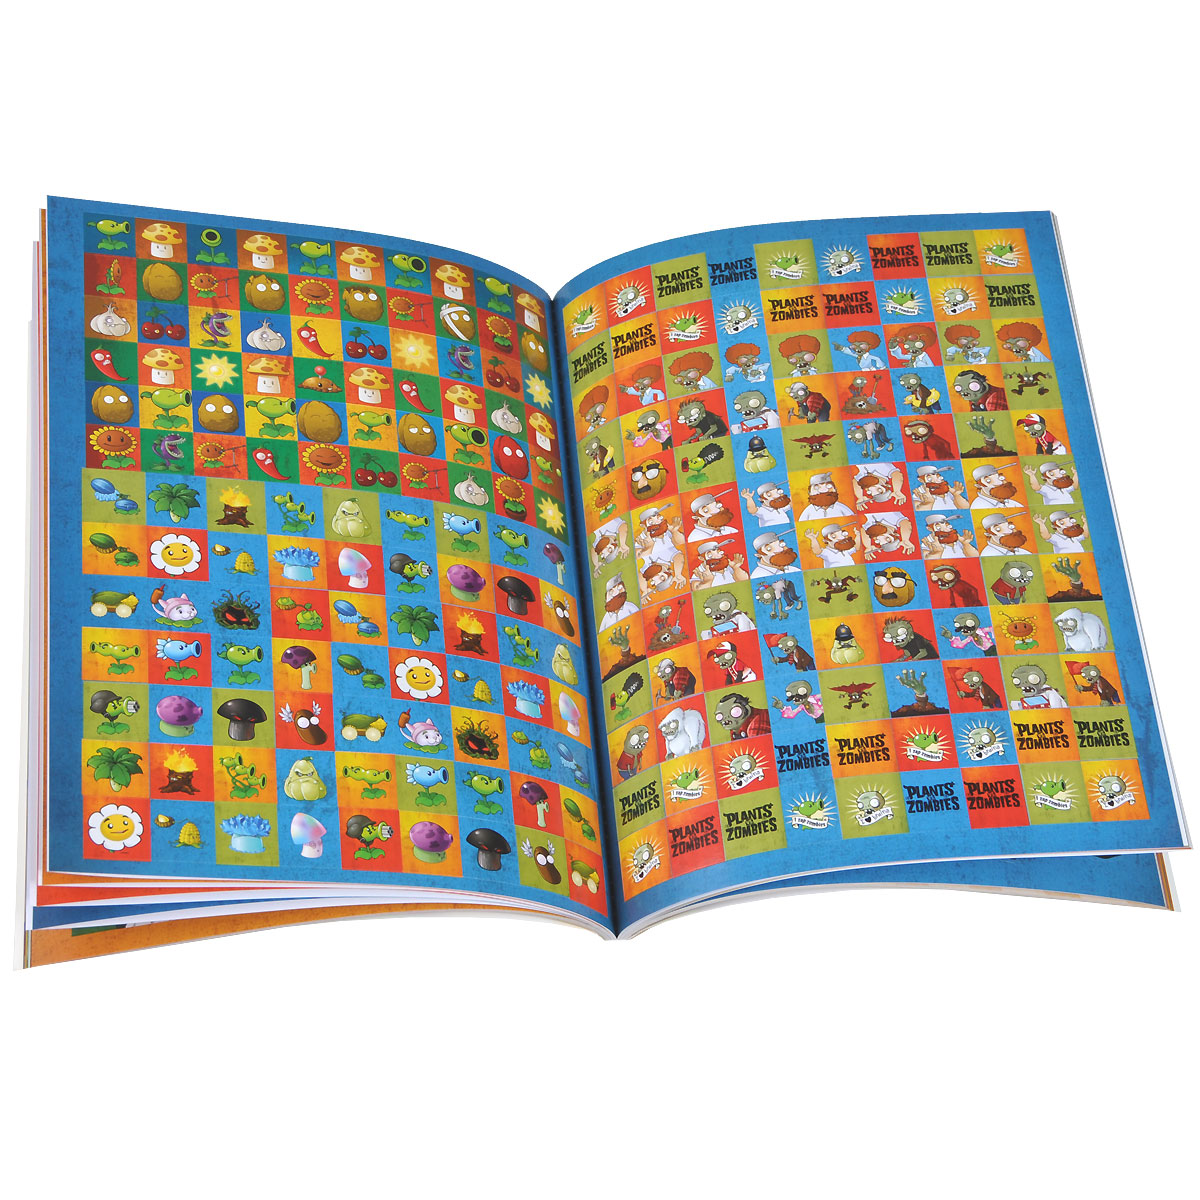 Plants vs. Zombies: Official Sticker Book